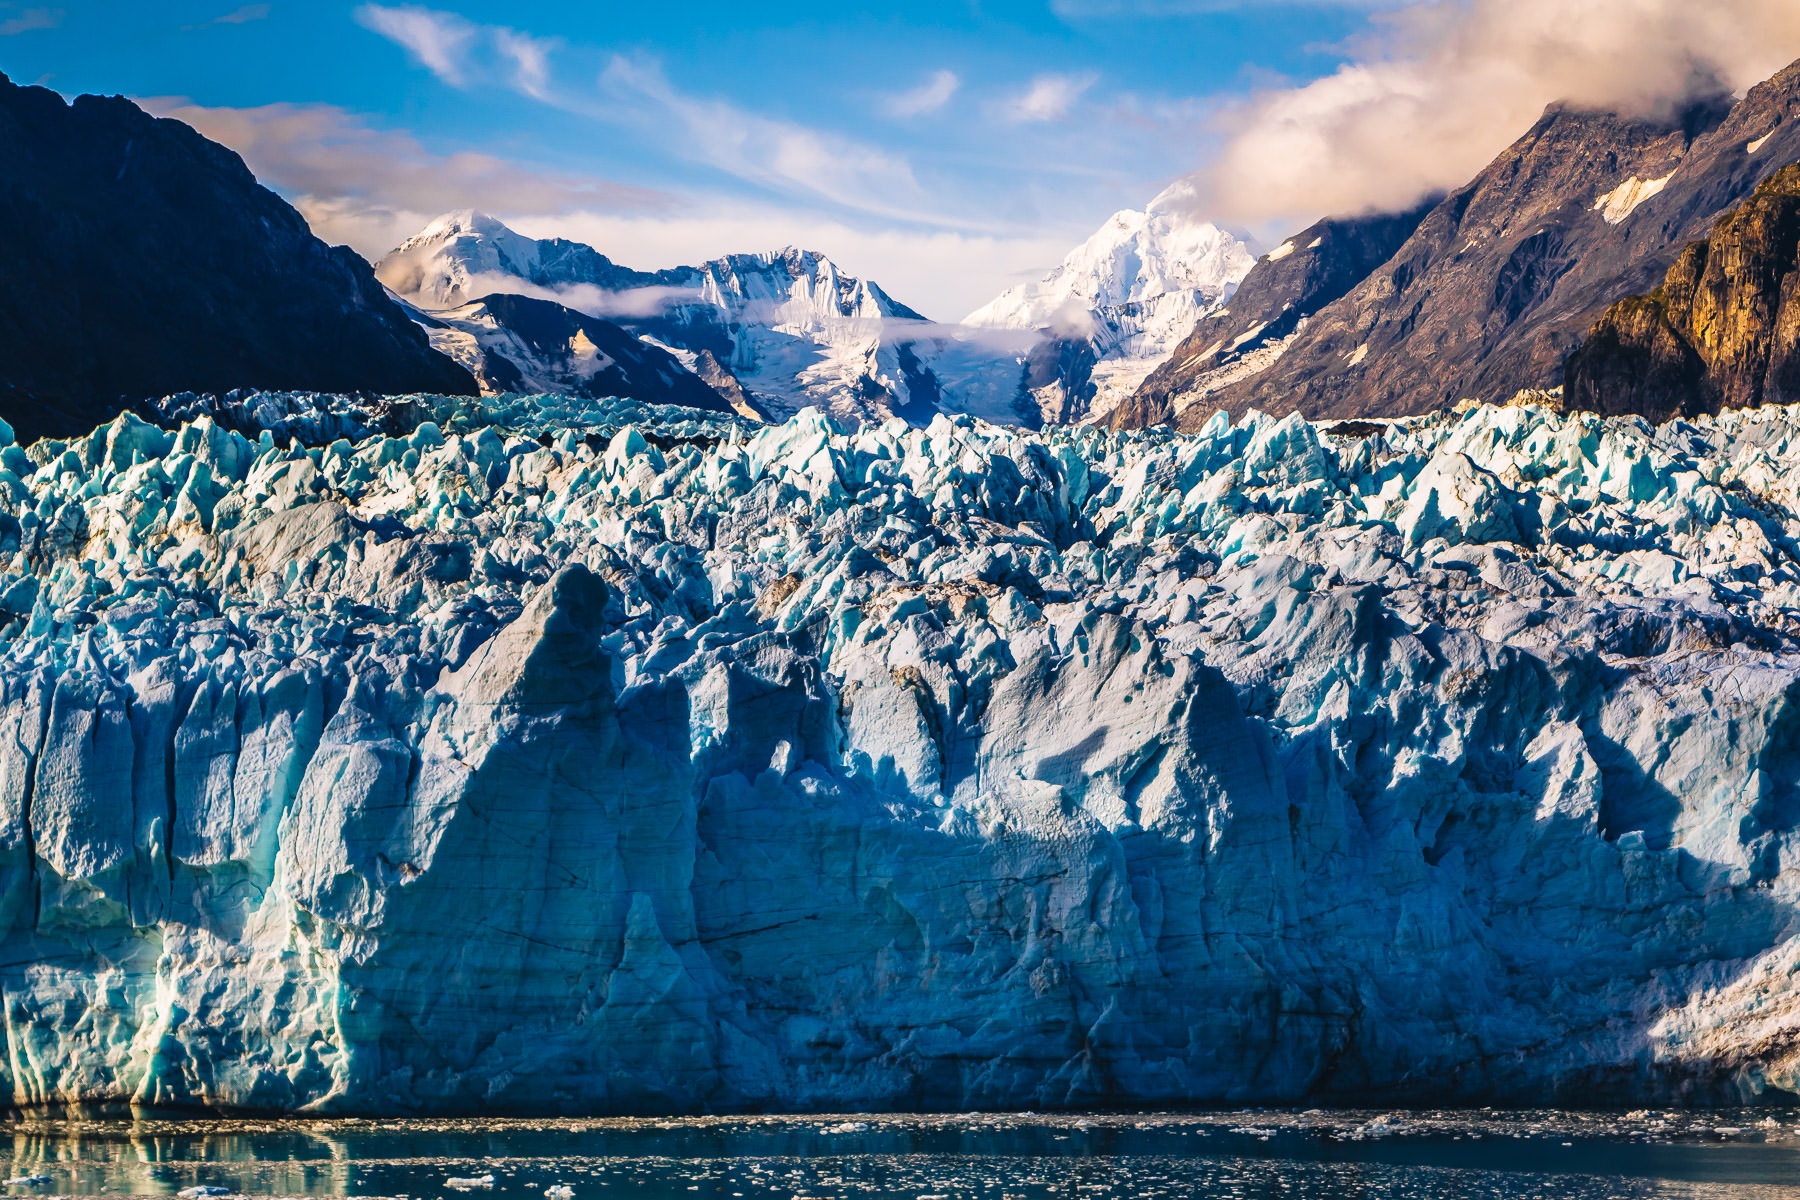 Distant mountains rise over the Margerie Glacier in Alaska's Glacier Bay National Park.